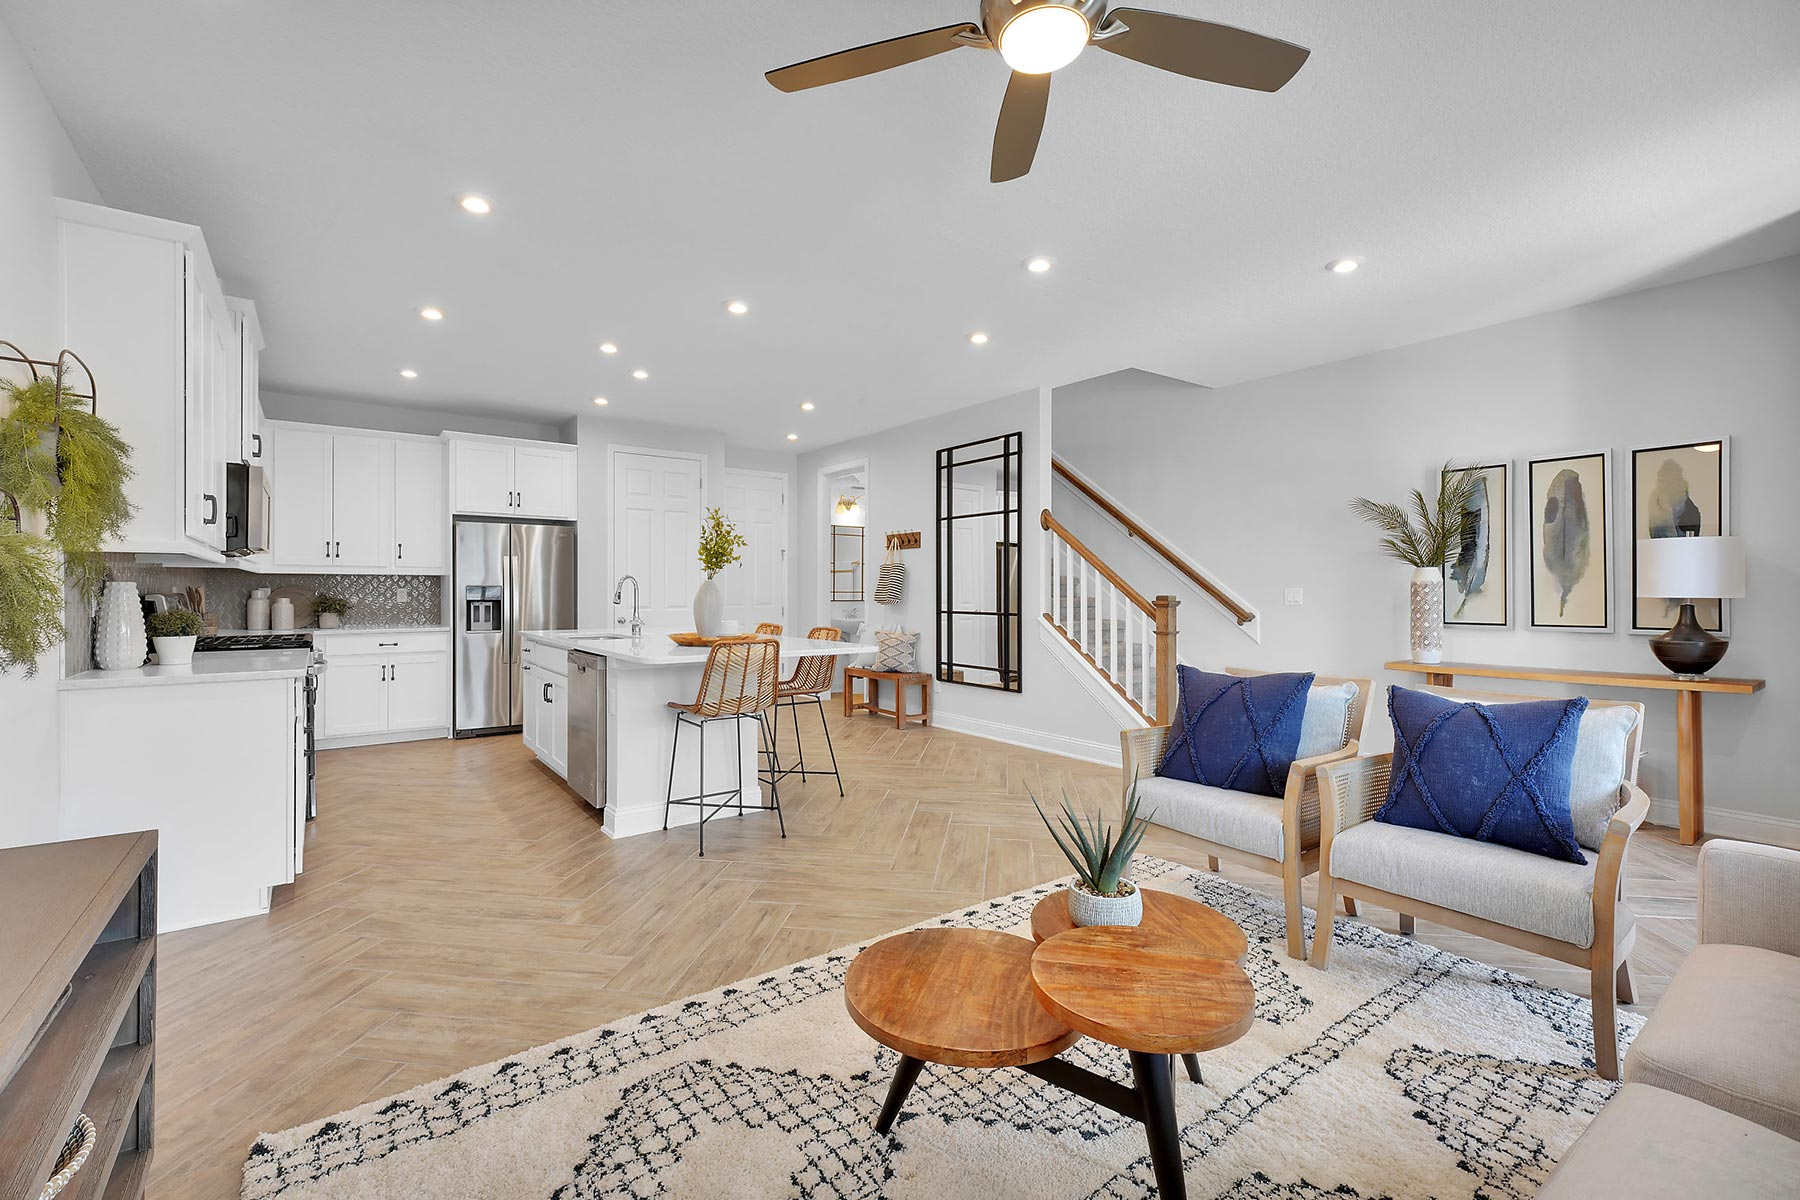 Rialta Plan Greatroom at Pablo Cove in Jacksonville Florida by Mattamy Homes